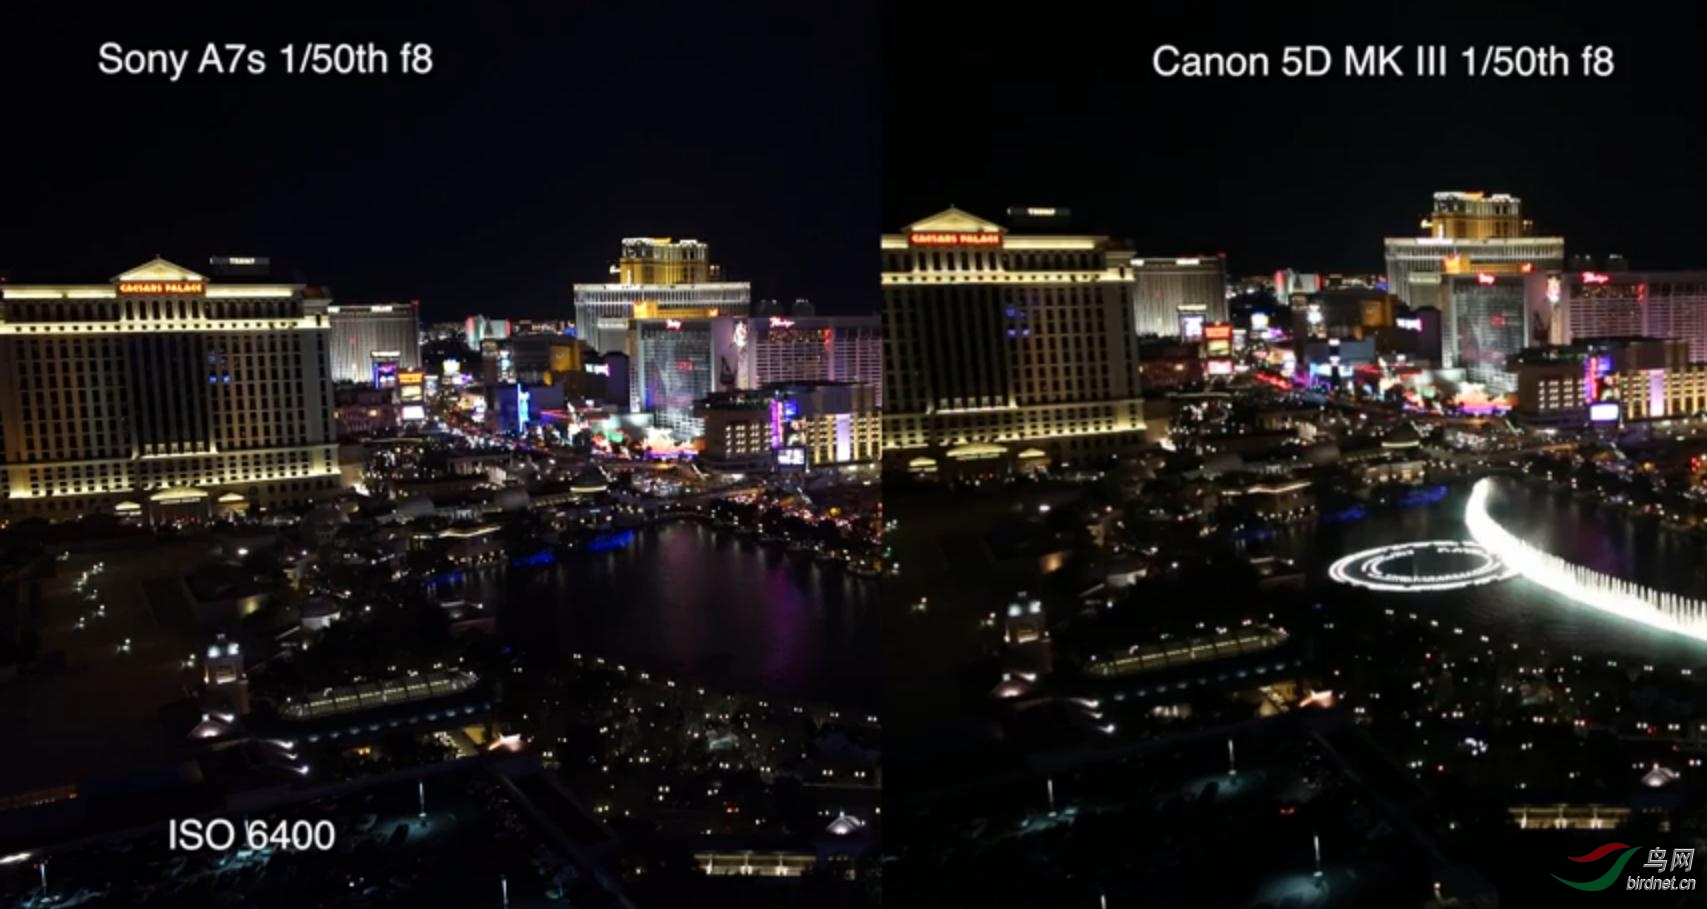 Sony A7s vs Canon 5D MK III side by side low